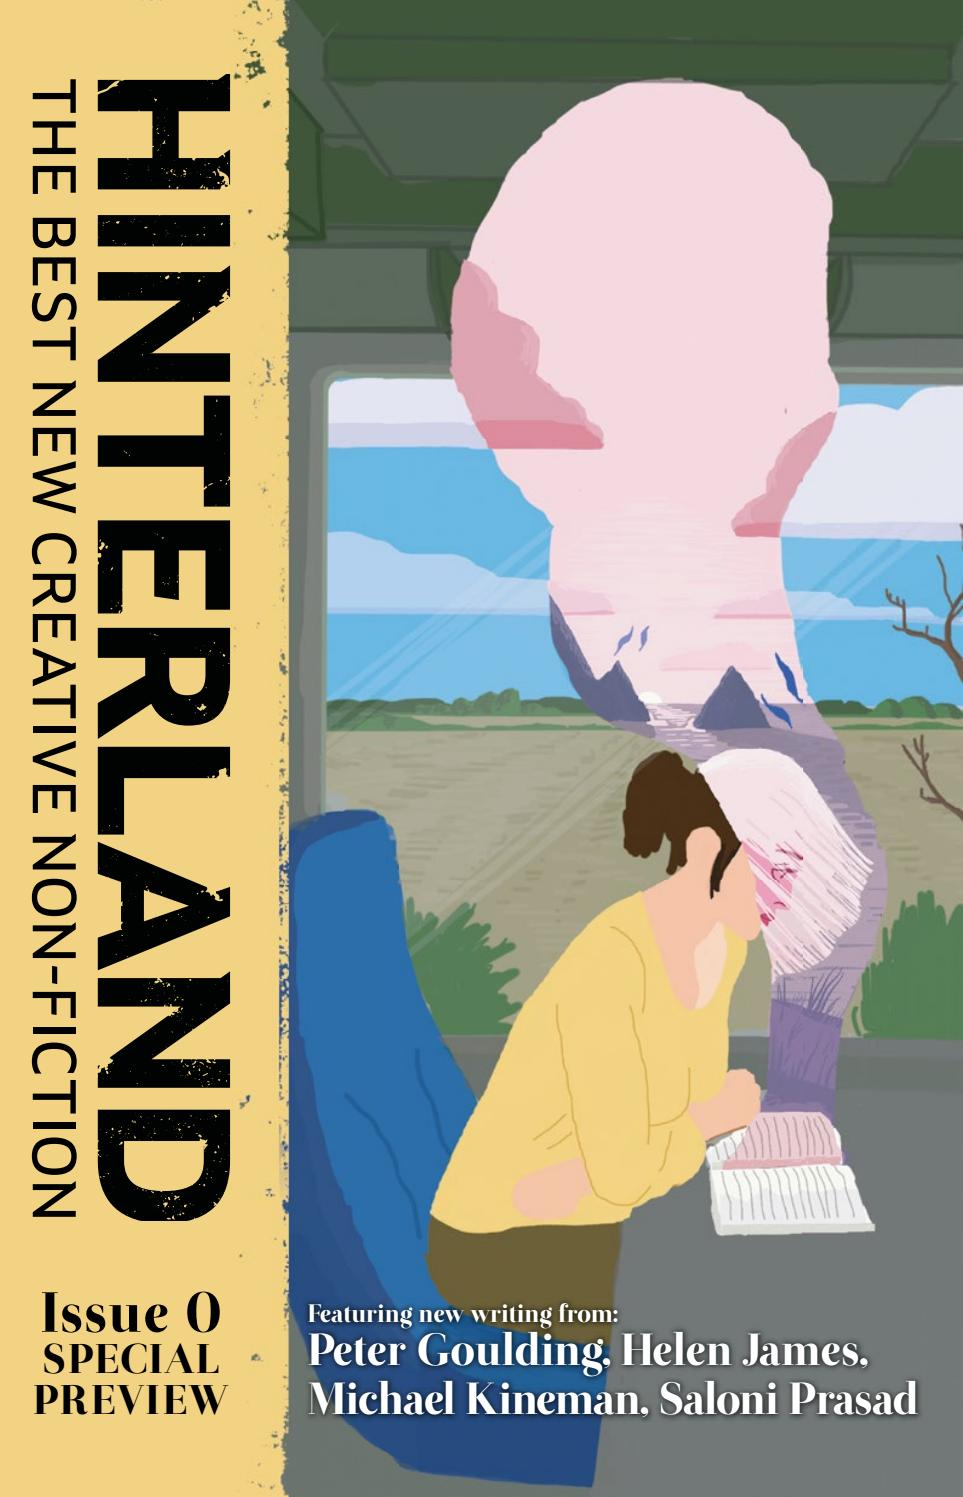 Hinterland Issue 0 - Special Preview by Hinterland Non